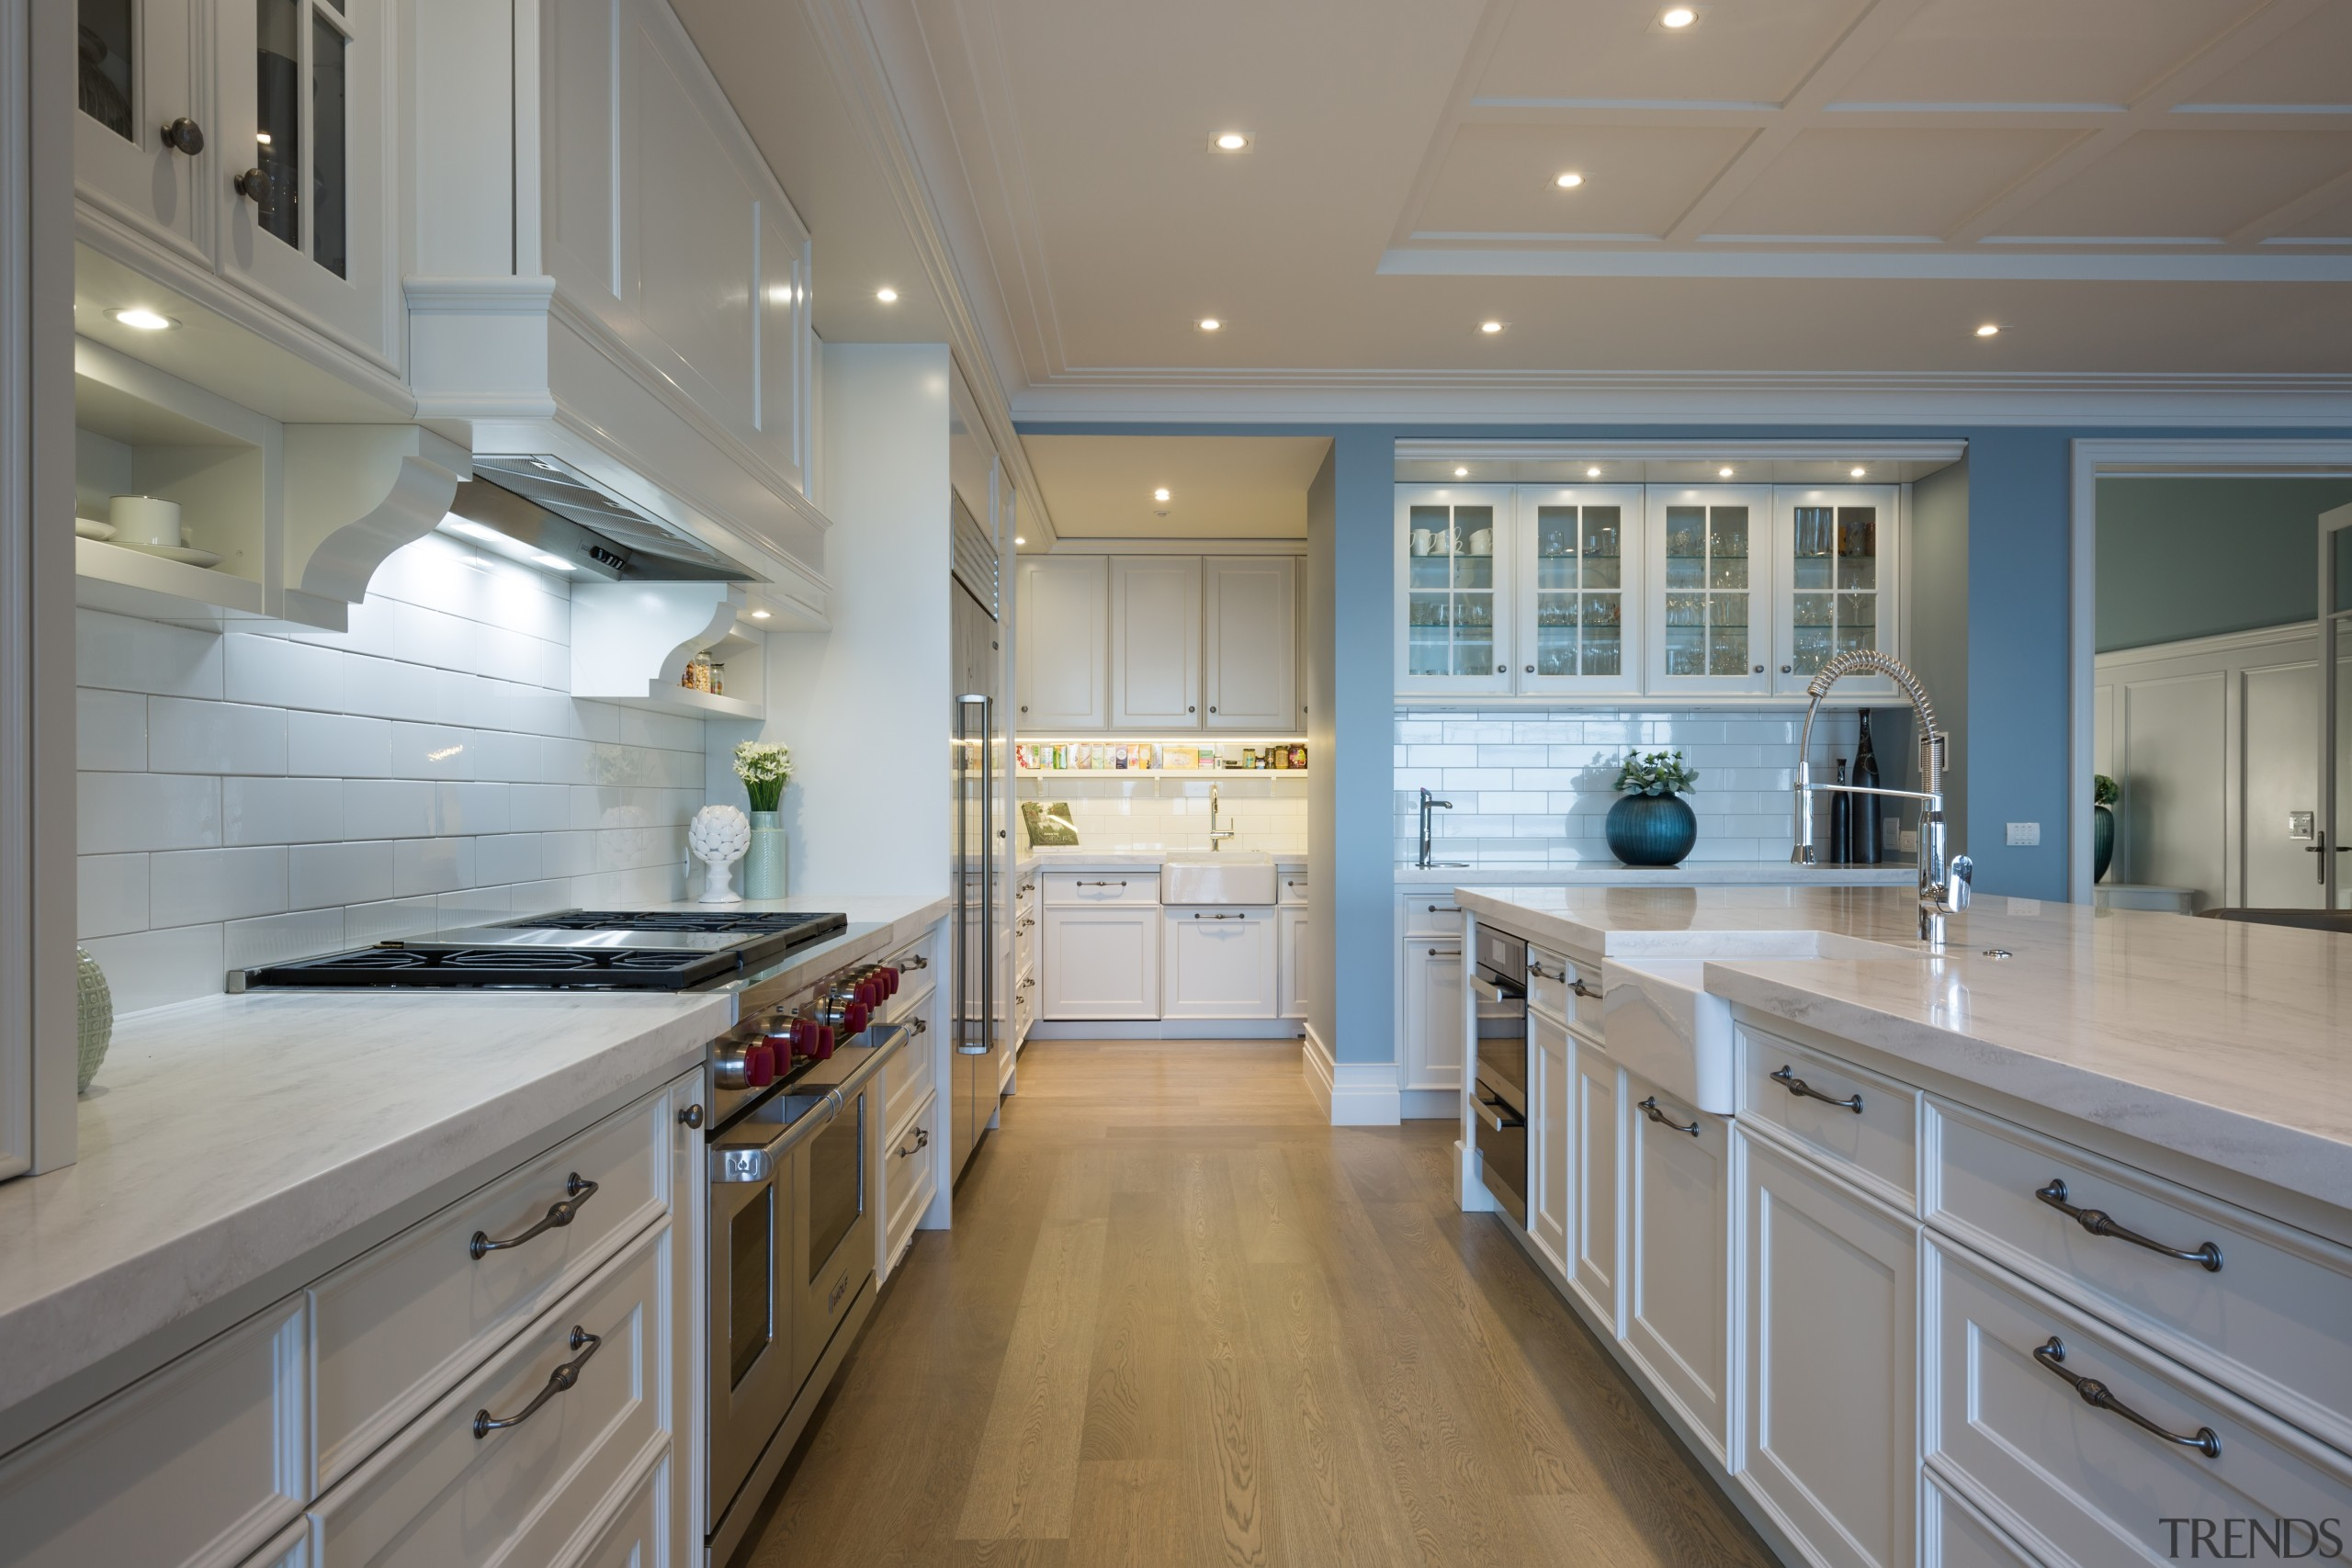 Campbells Bay - cabinetry | countertop | cuisine cabinetry, countertop, cuisine classique, floor, flooring, hardwood, interior design, kitchen, room, gray